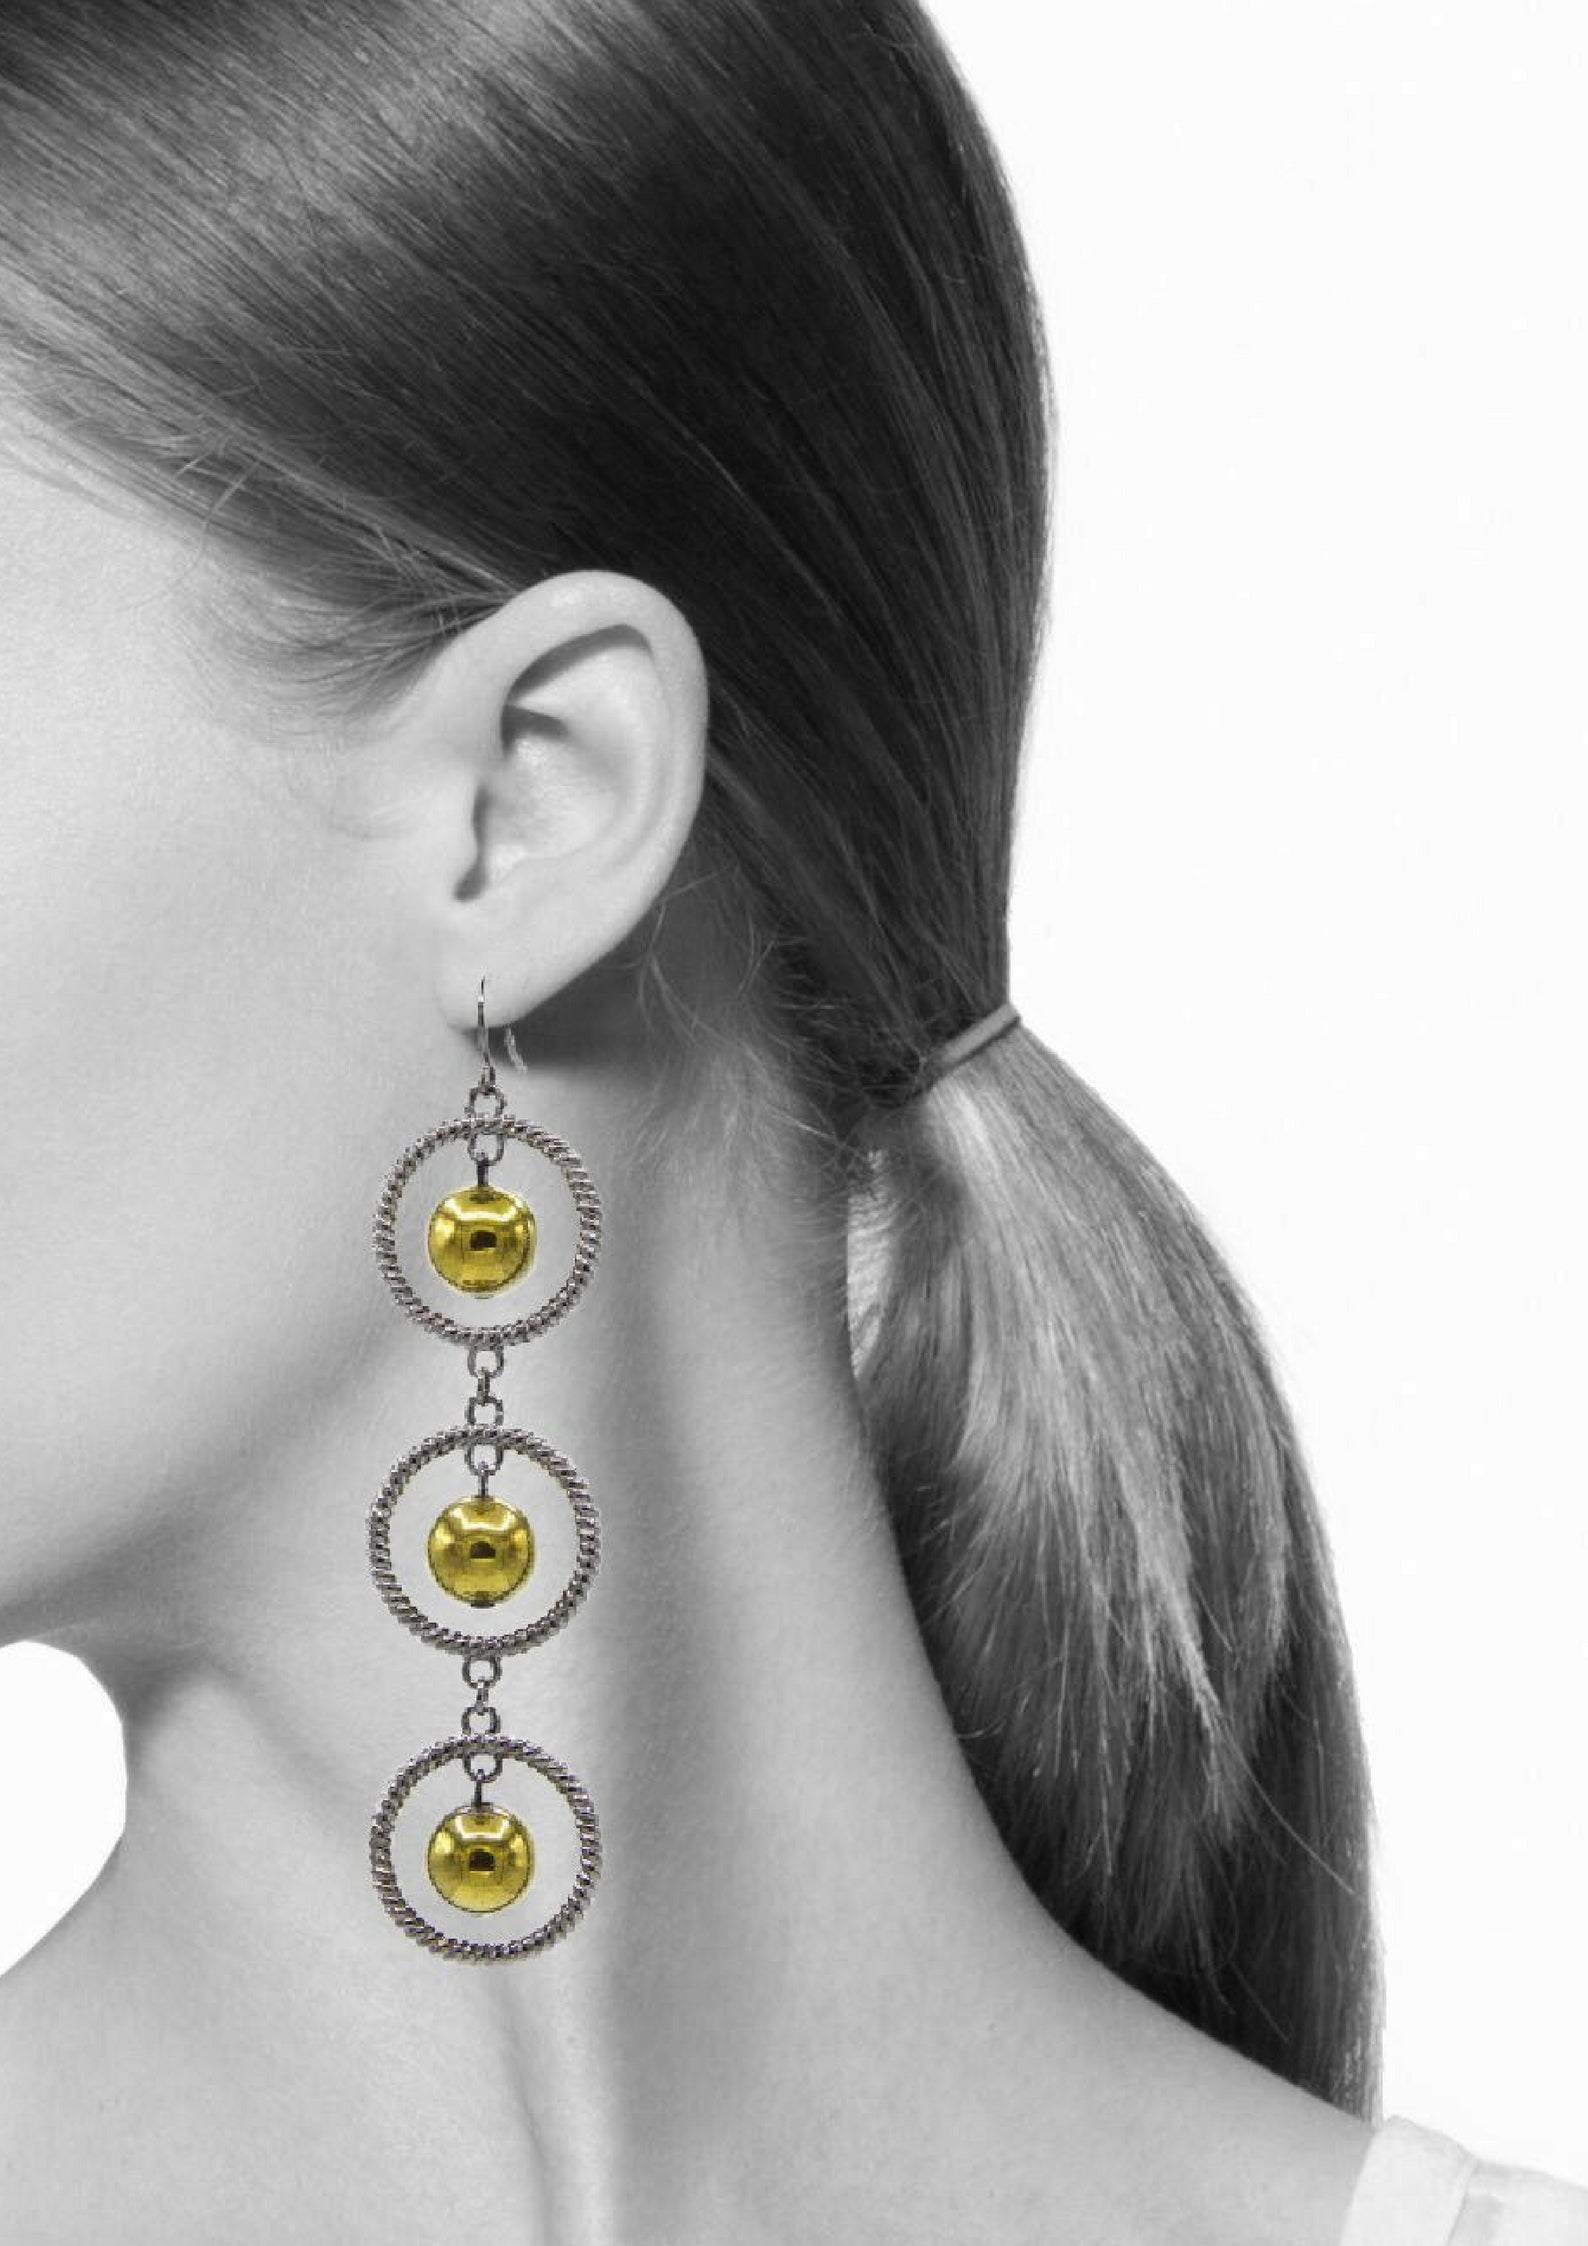 French Orrery Earrings-Earrings-JAREDJAMIN Jewelry Online-JARED JAMIN